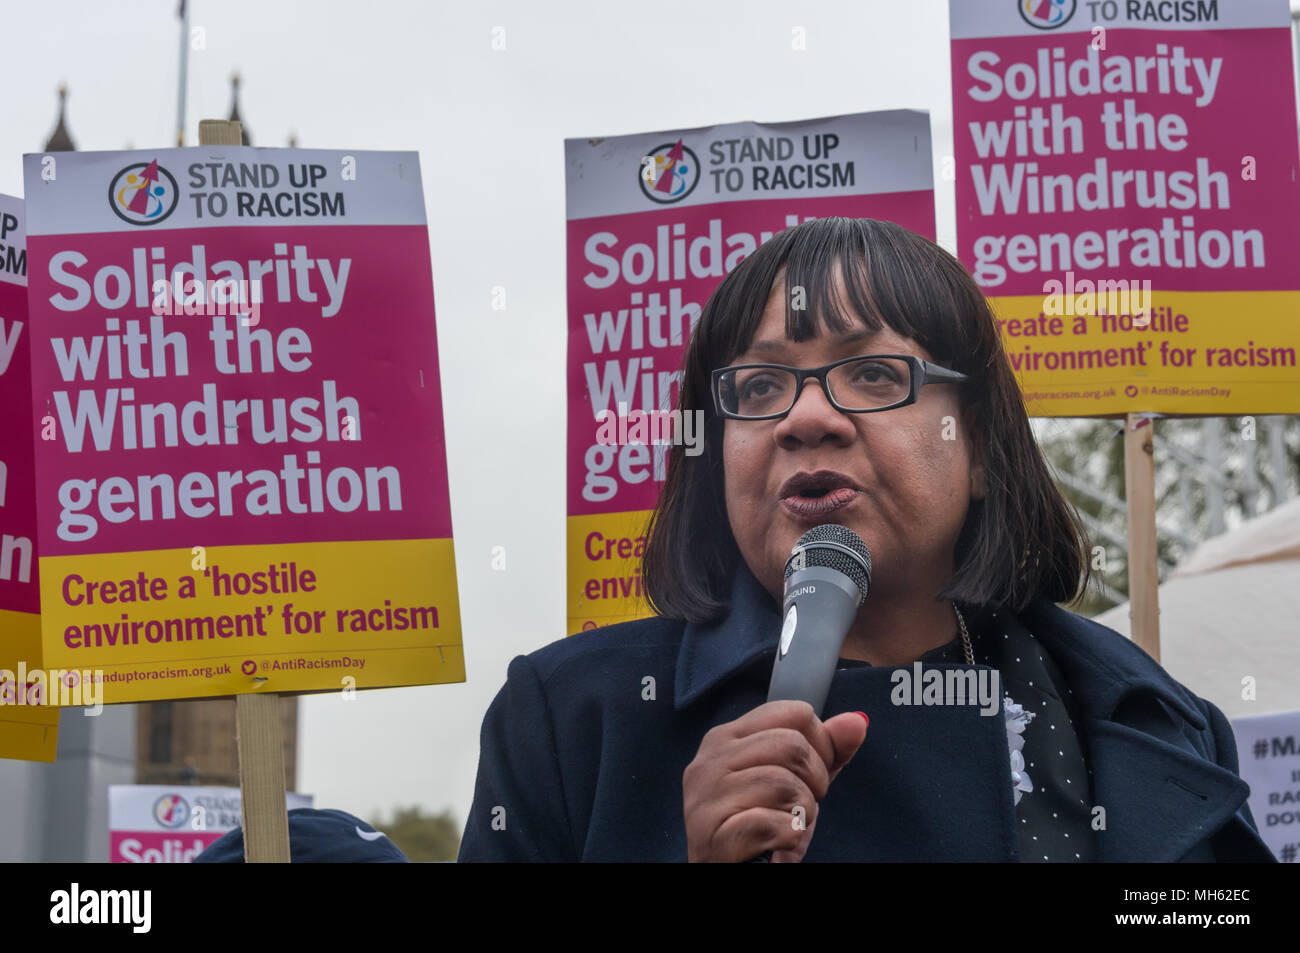 London, UK. 30th April 2018.  Shadow Home Secretary Diane Abbott speaks at the protest in support of the petition calling for an end to the deportations of migrants in the 'Windrush generation' who arrived in Britain between 1948 and 1971. It calls on the government to change the burden of proof which means they are now required to prove their right to remain, and to provide compensation for any loss and hurt.. re for many years, paying taxes and raising families here Credit: Peter Marshall/Alamy Live News - Stock Image